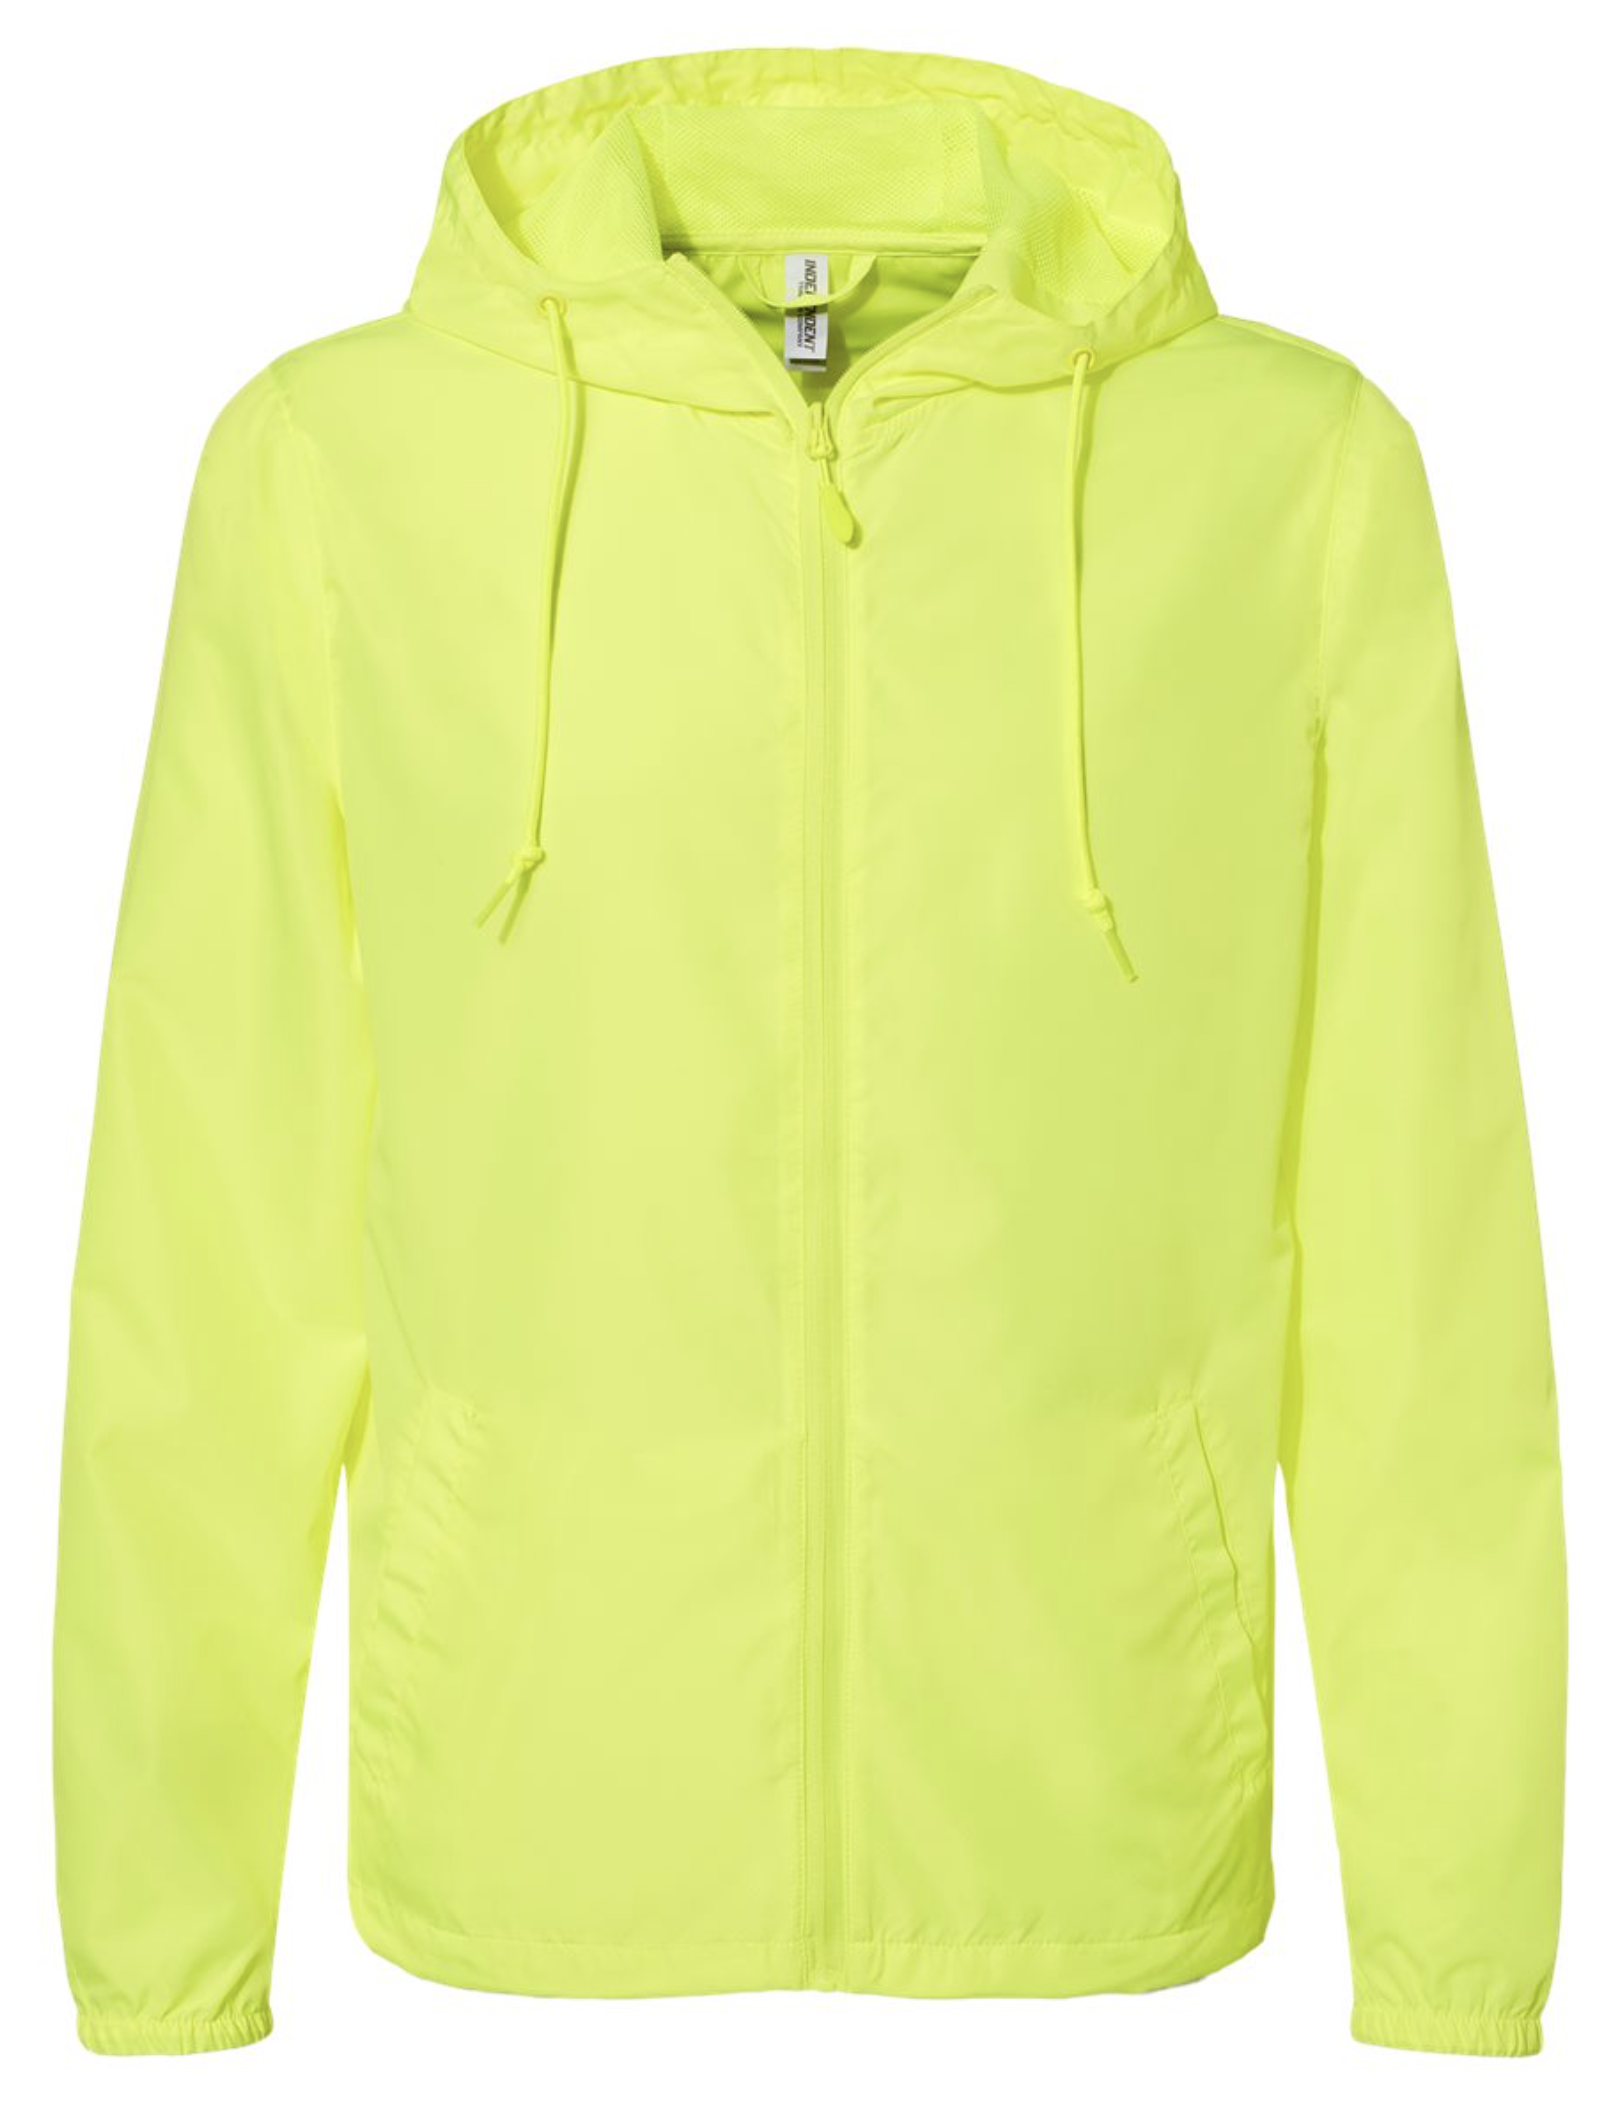 Unisex Lightweight Windbreaker Full-Zip Jacket - Safety Yellow